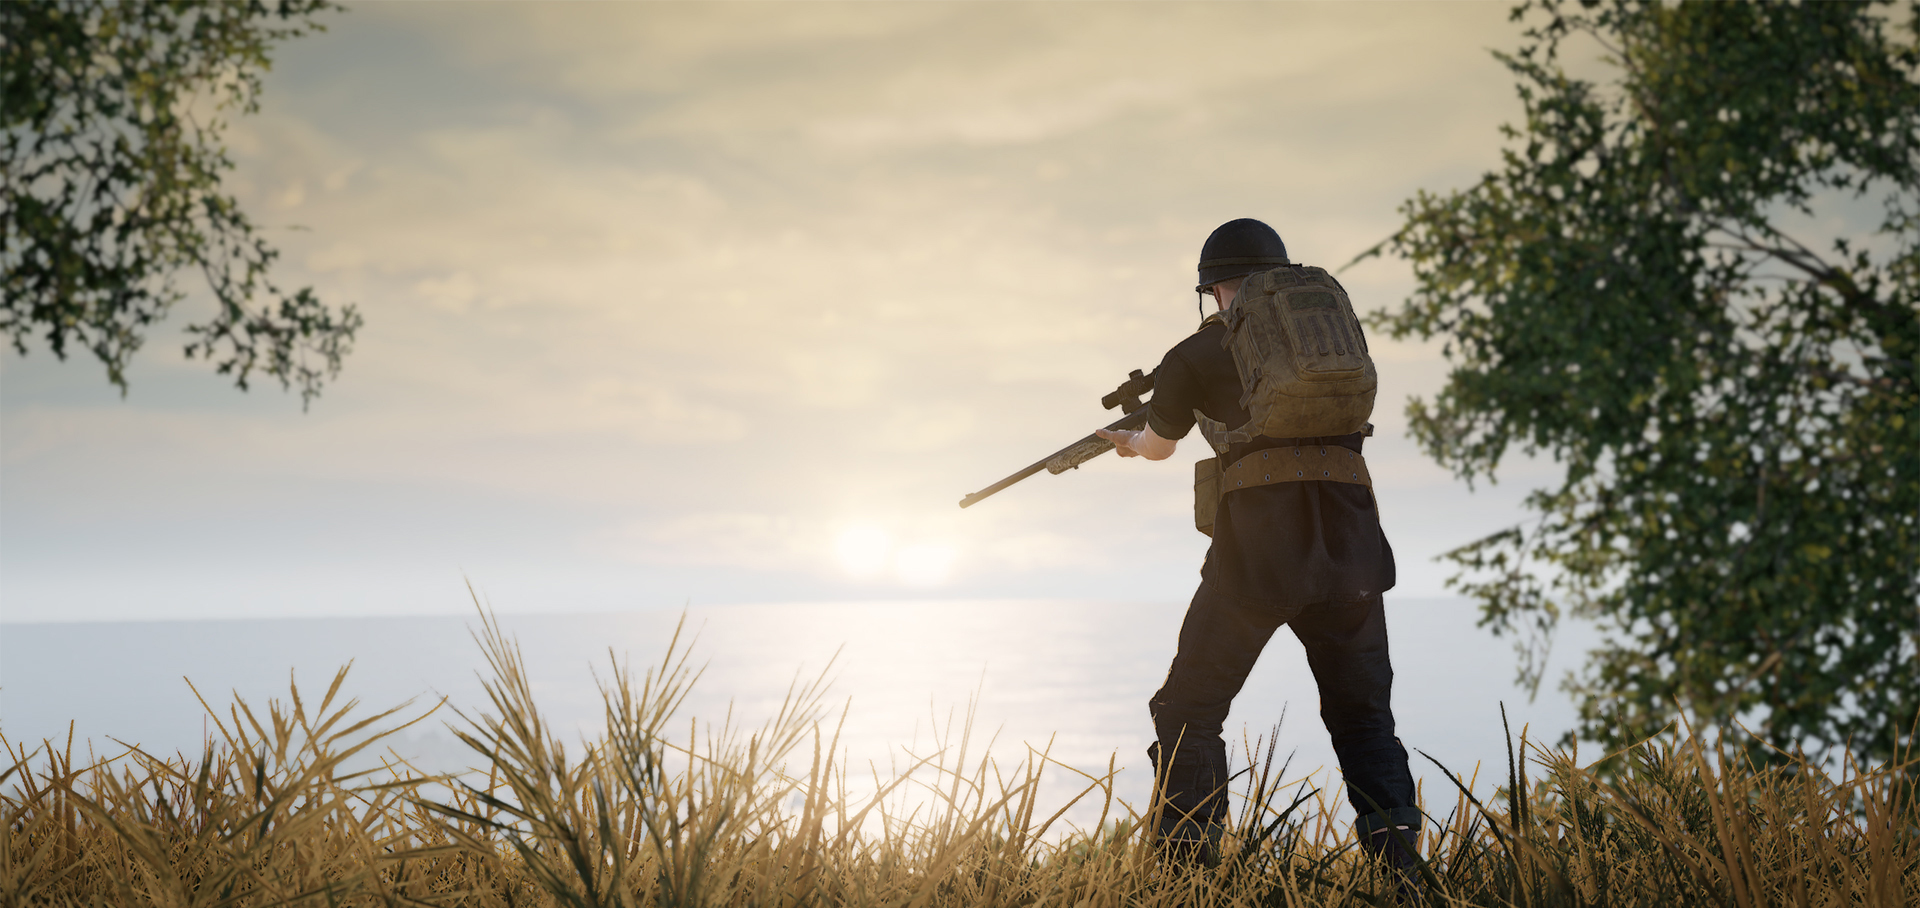 PUBG's latest patch is full of small features players have wanted for years